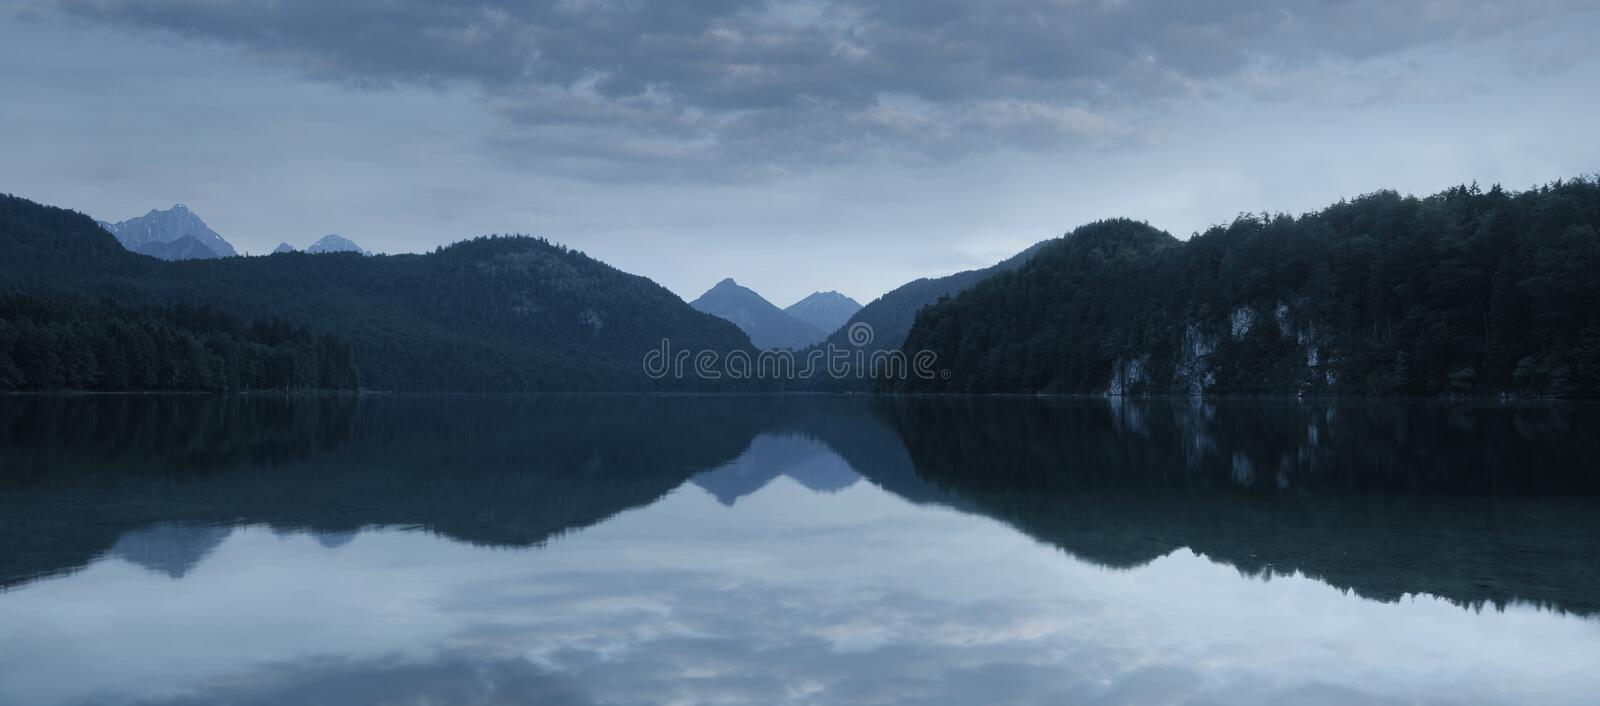 Alpsee images stock